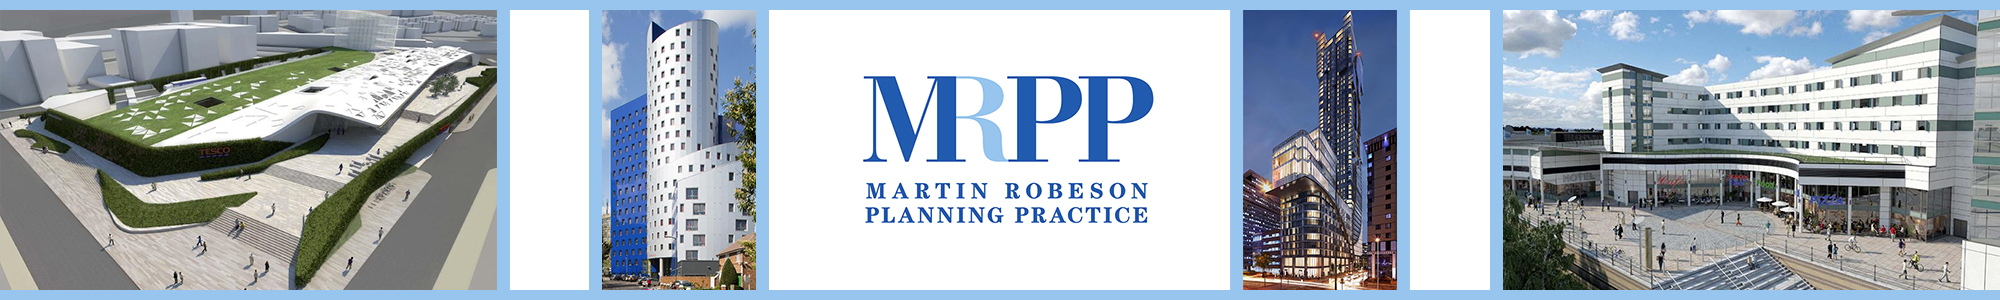 Martin Robeson Planning Practice